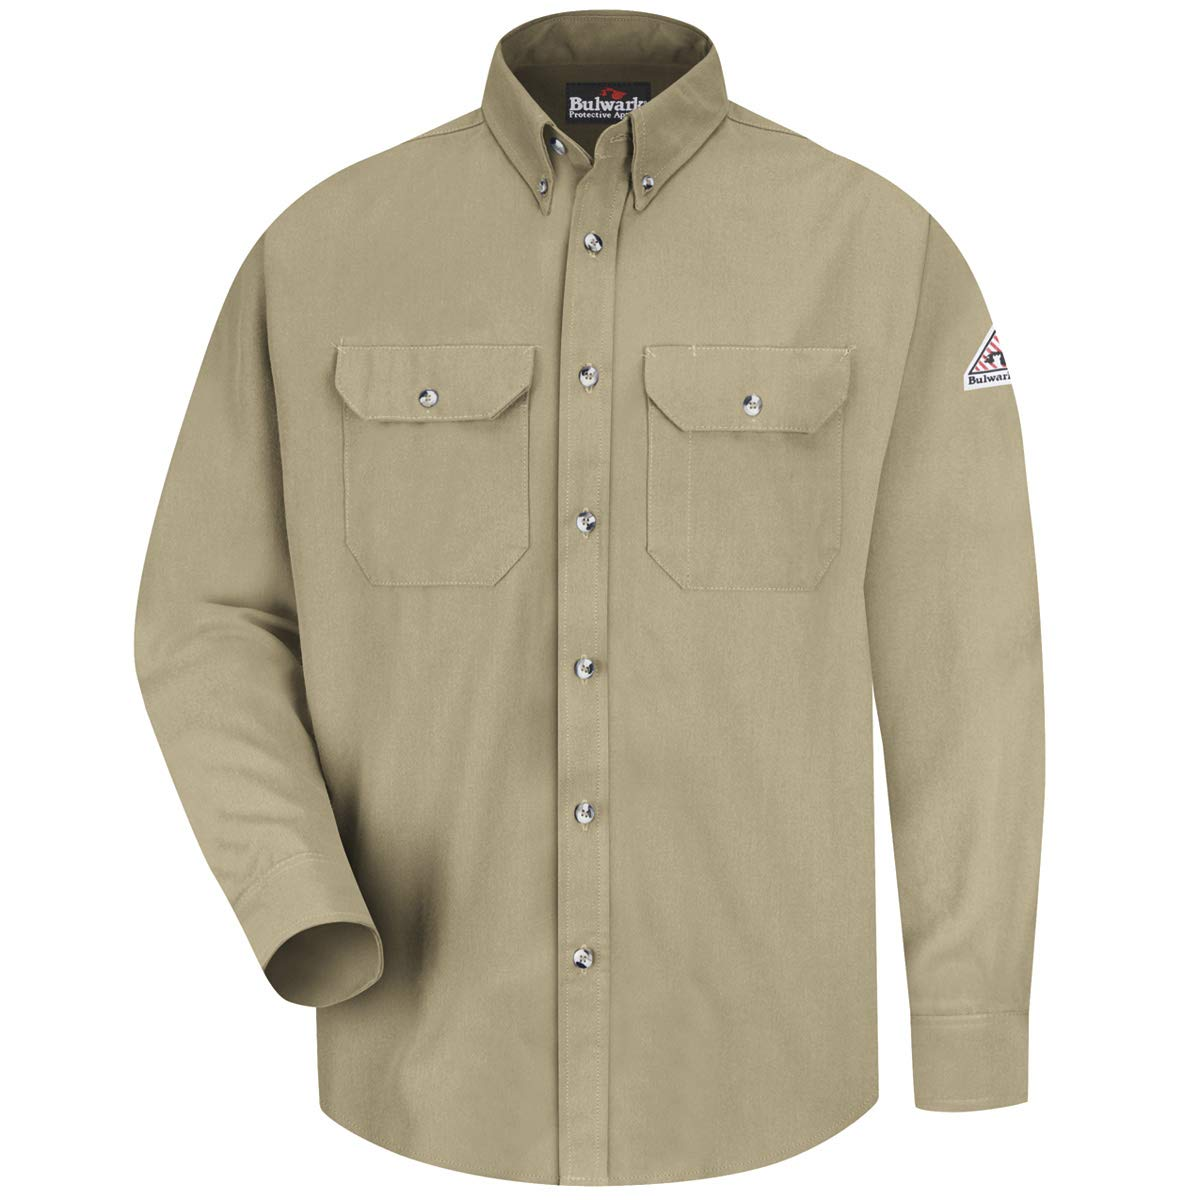 Bulwark Medium Khaki Cool Touch 2 Flame Resistant Shirt With Button Closure